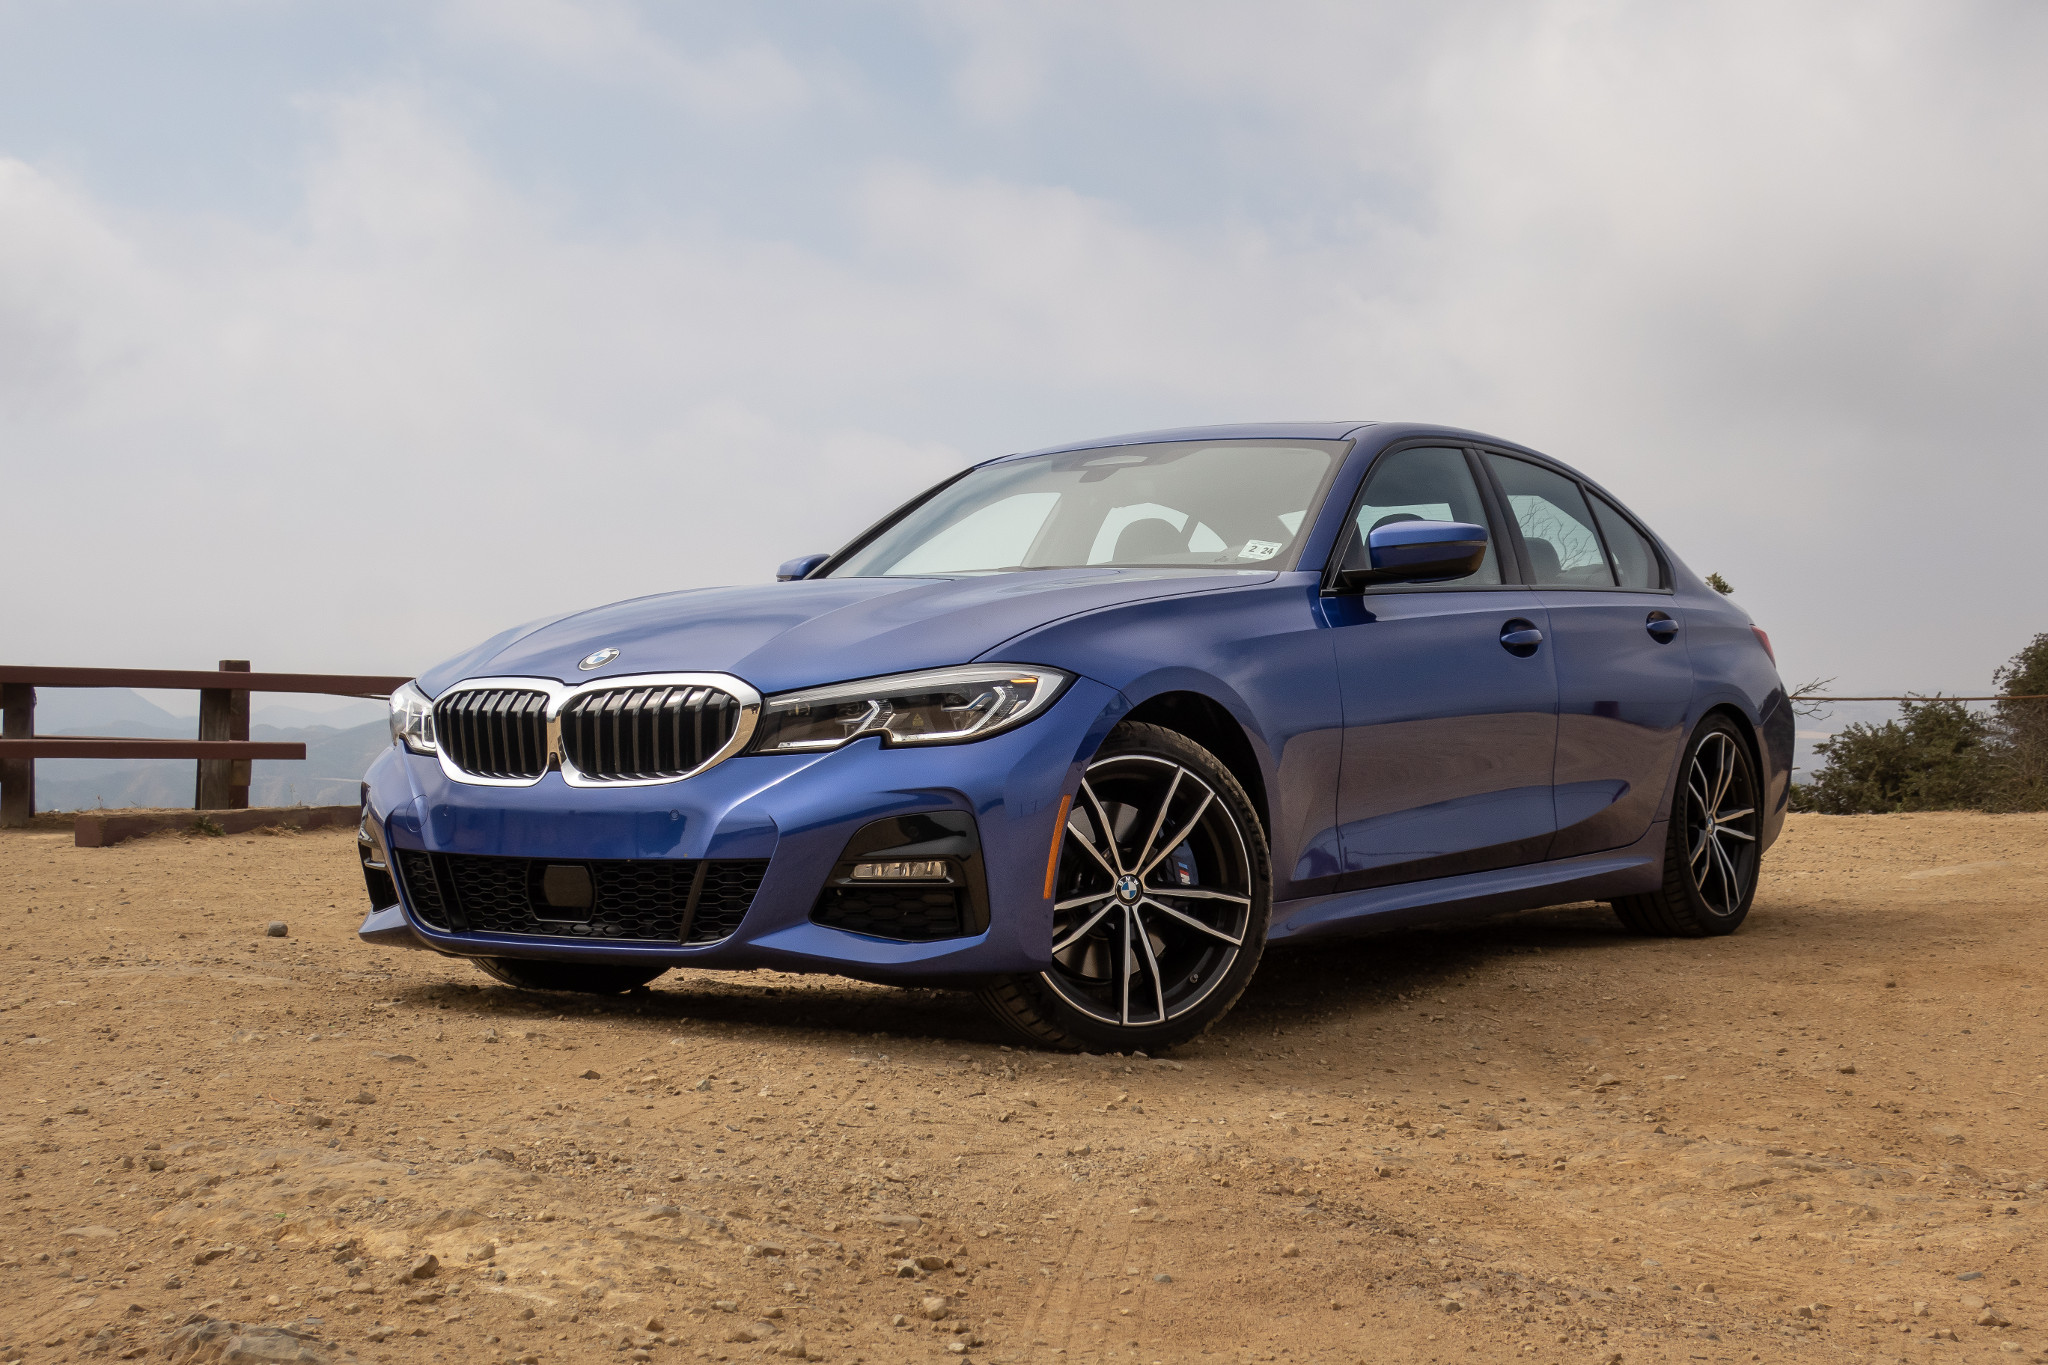 2019 BMW 330i Review: Now More Machine Than Man